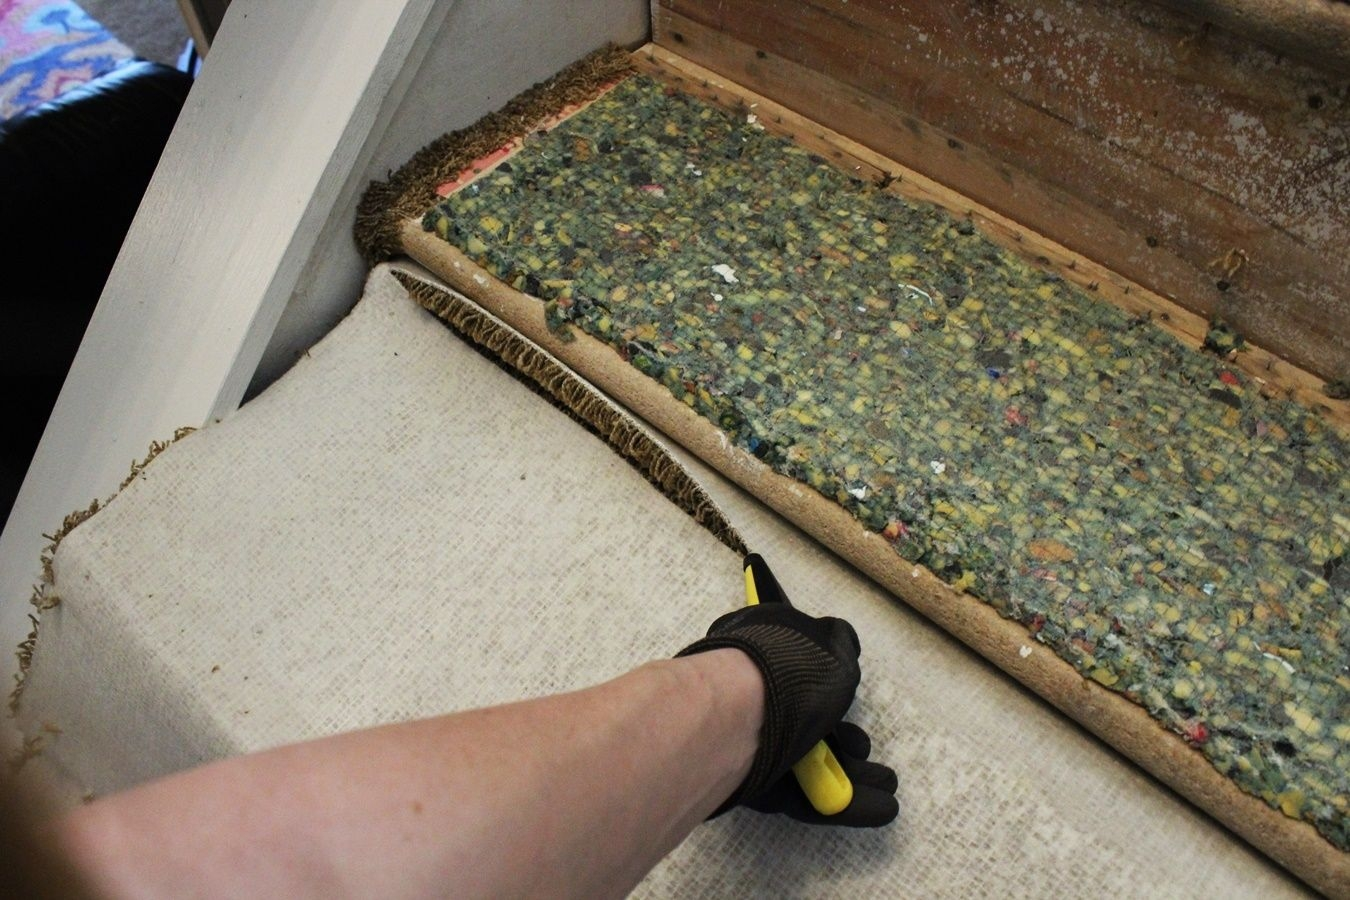 Update Your Staircase How To Remove And Install Carpet On The Stairs | Cutting Carpet For Stairs | Carpet Tiles | Carpet Runner | Stair Tread | Wooden Stairs | Stair Runner